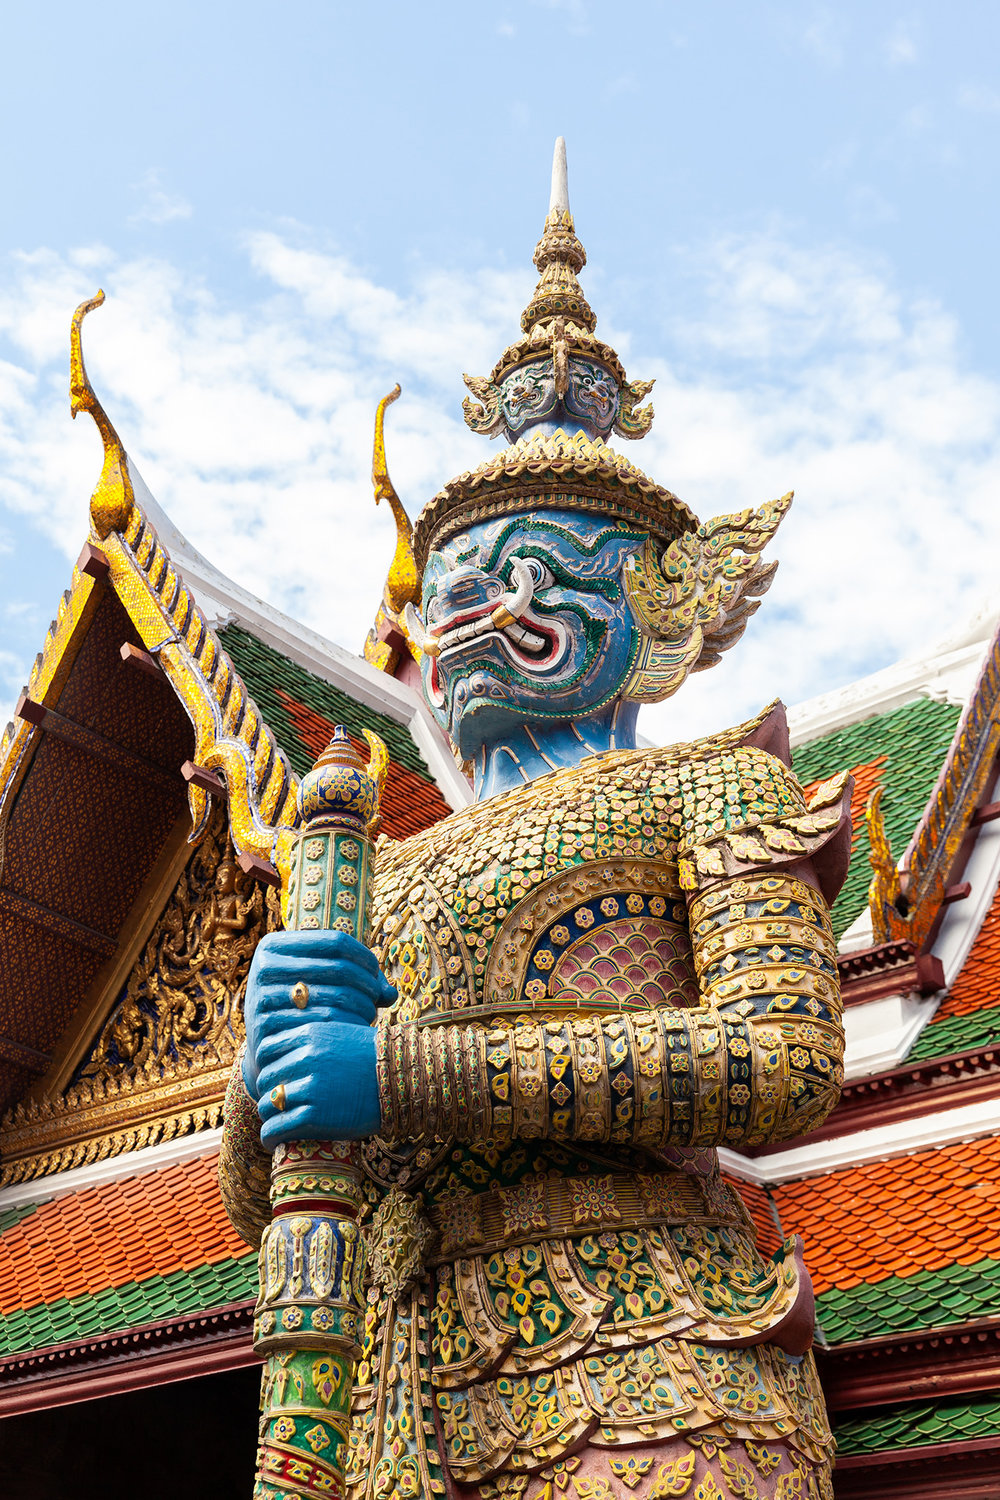 A Demon Guardian stands watch, protecting the Emerald Buddha from evil spirits, inside the Grand Palace